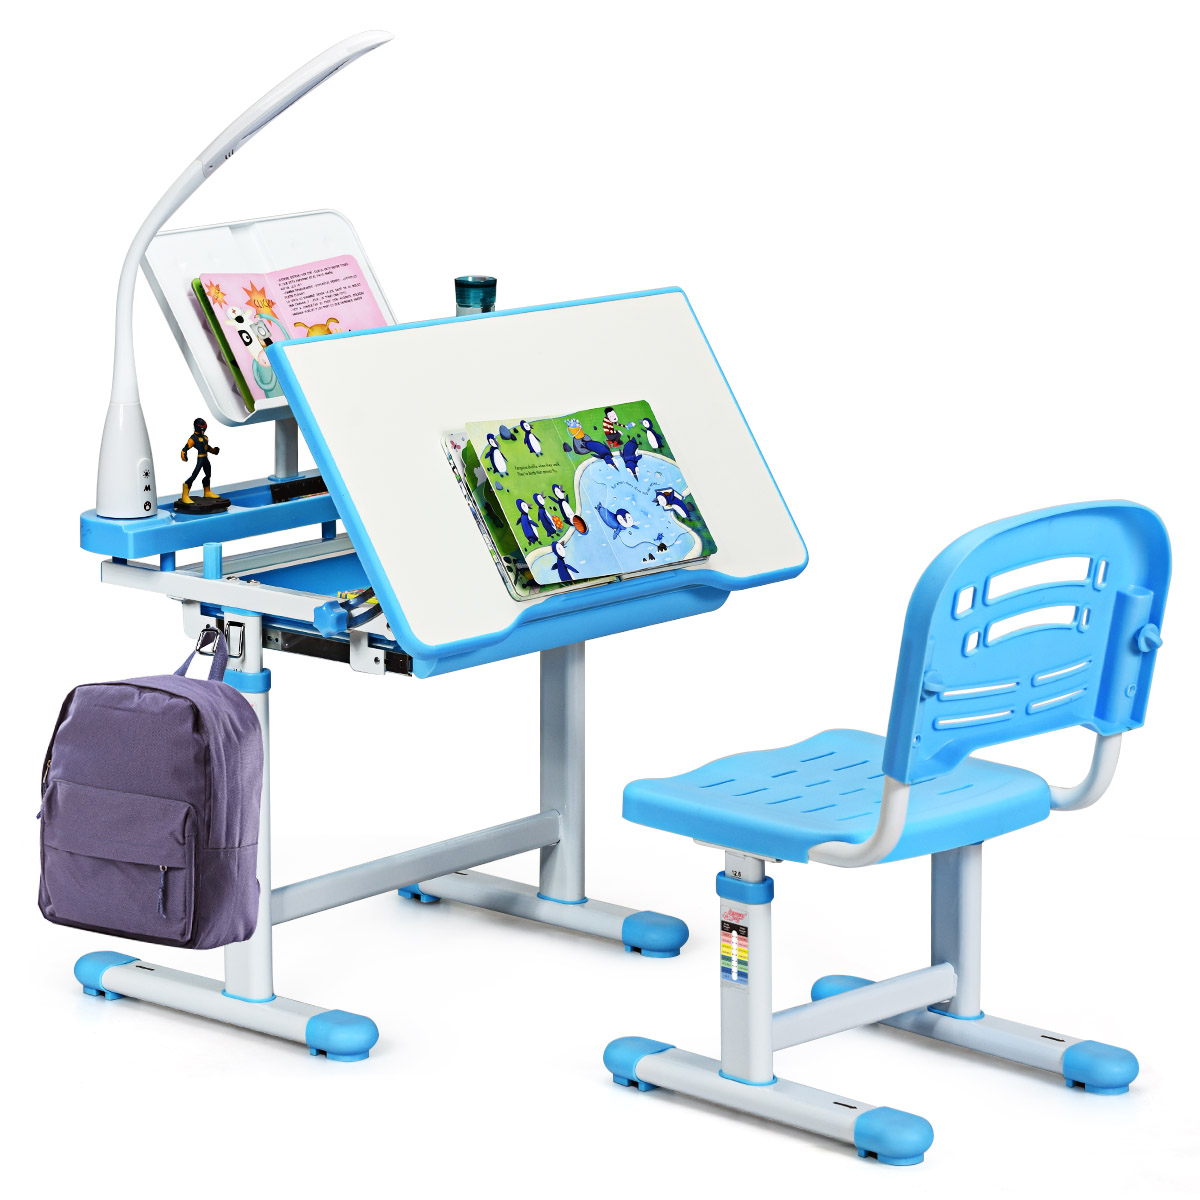 Kids Study Desk &Chair Set Adjustable Height Writing Table W/Lamp Bookstand Blue